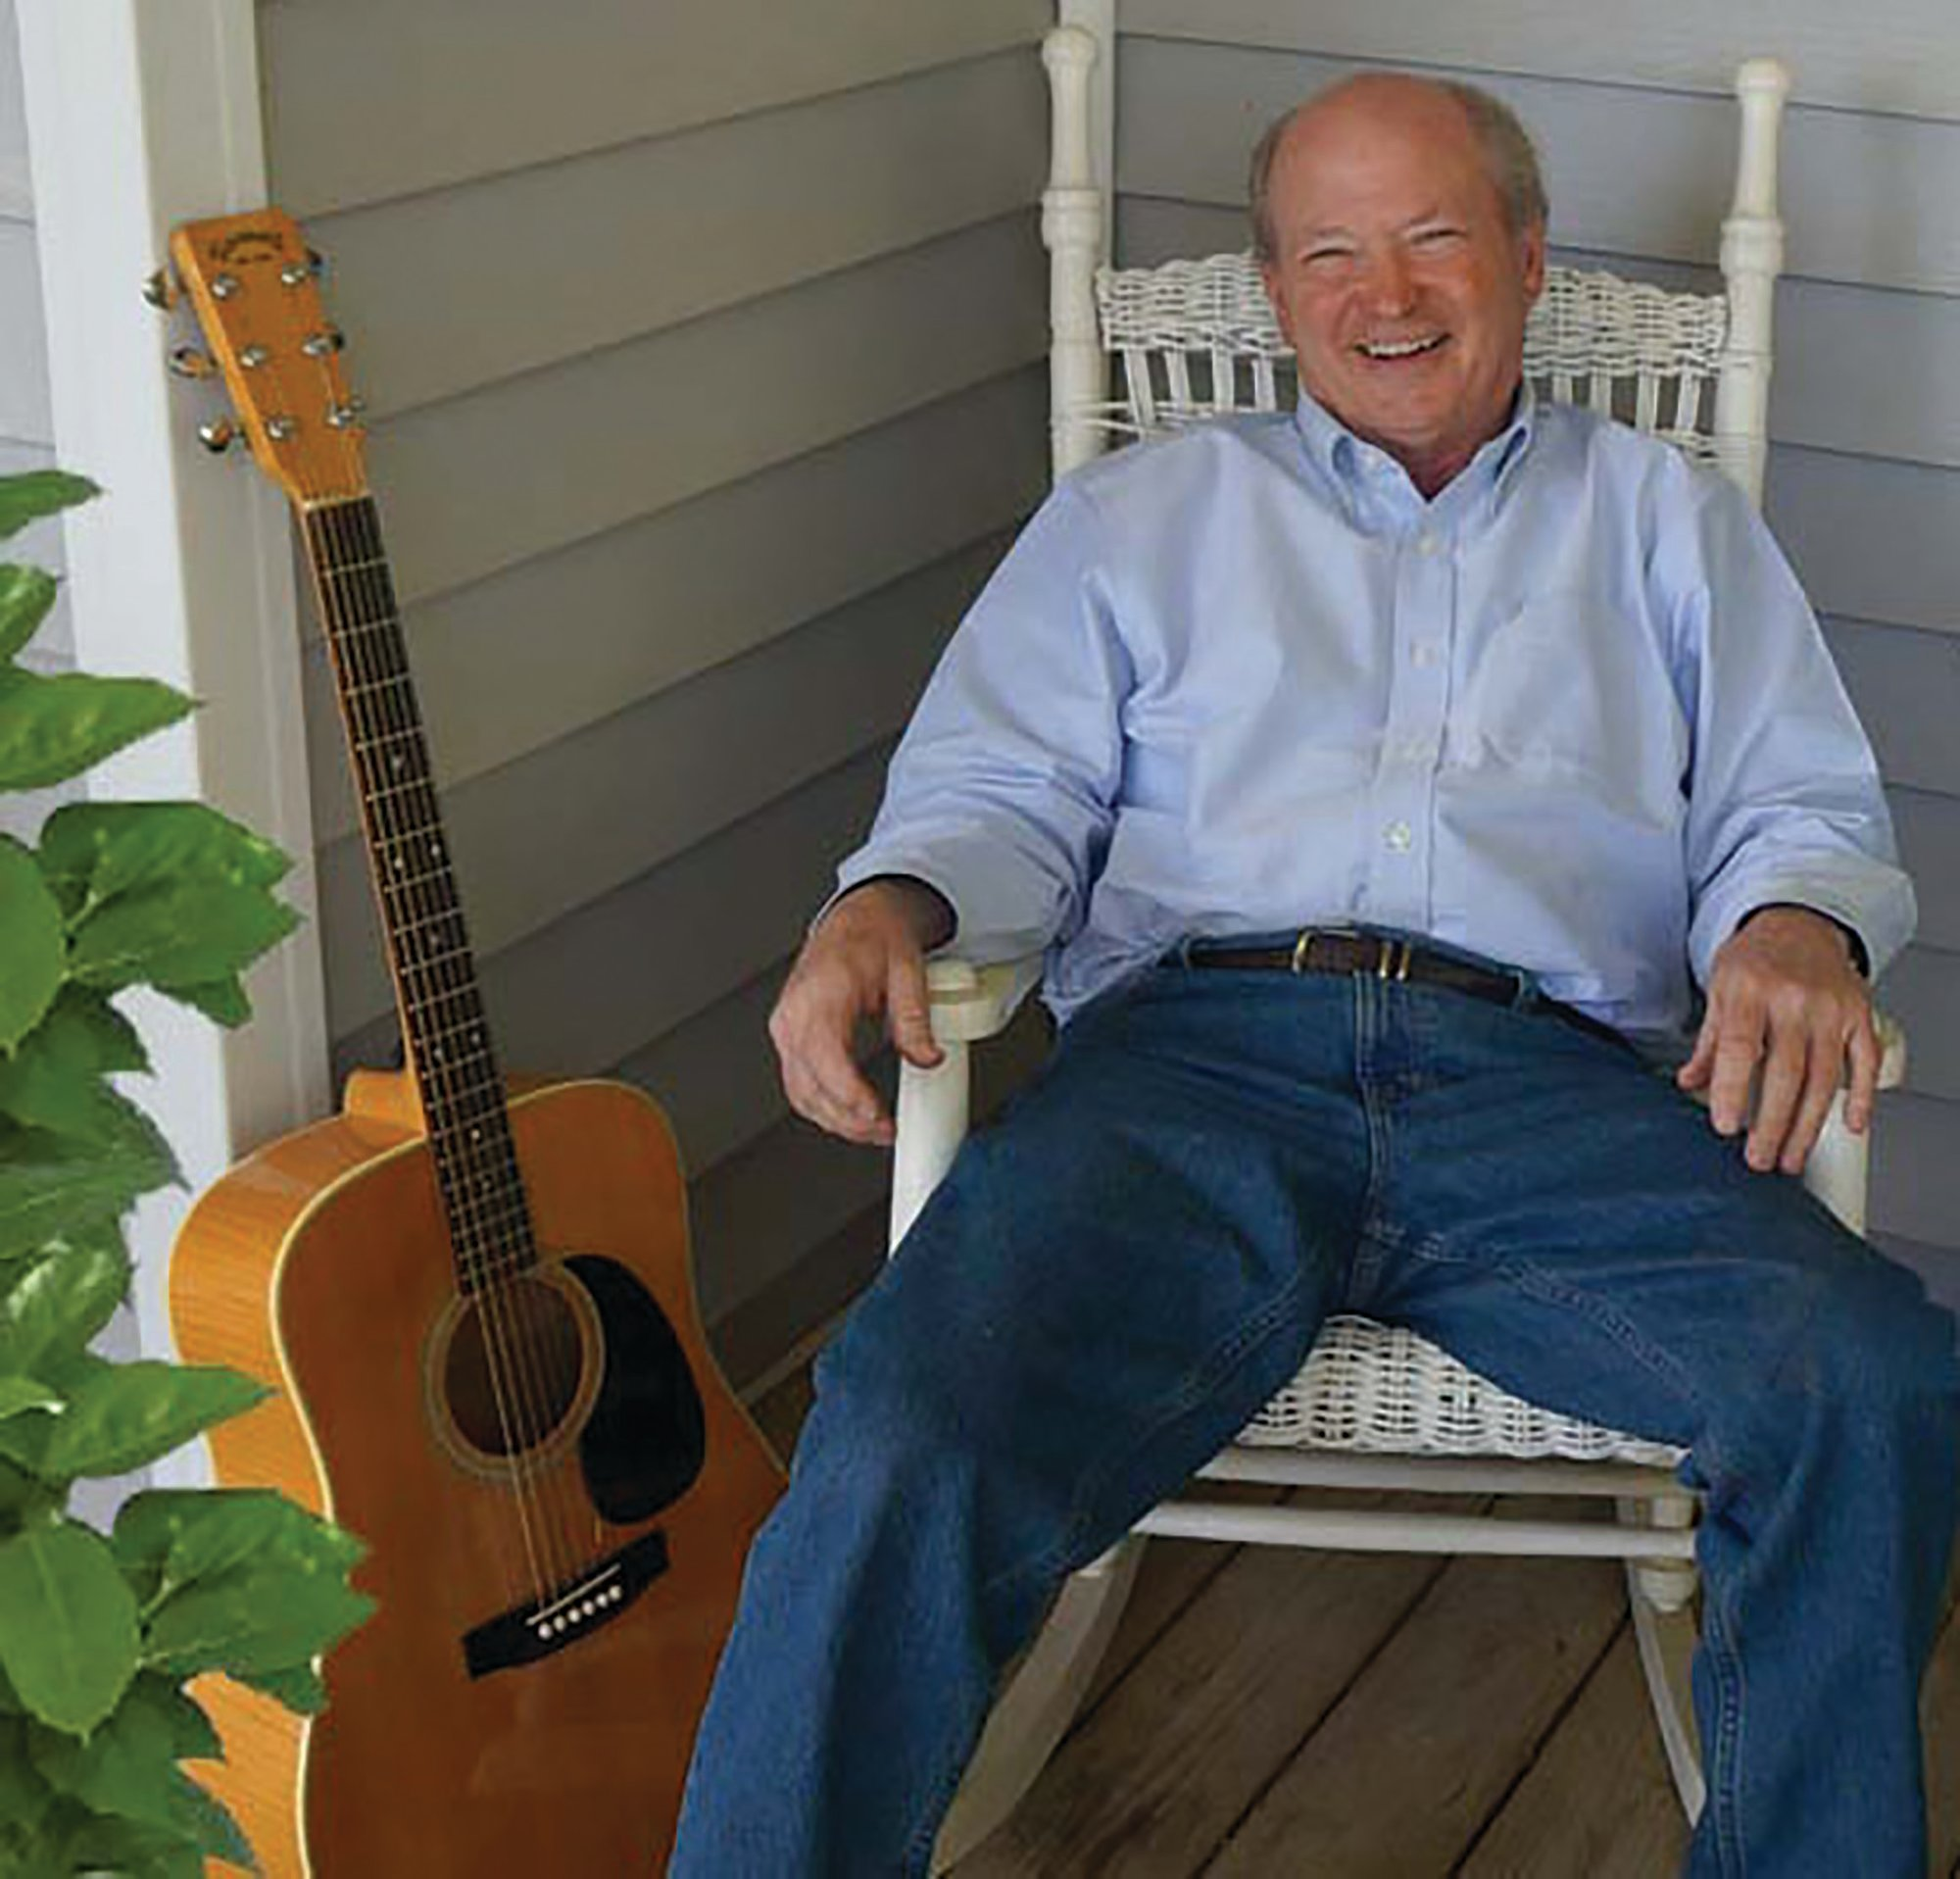 Johnny Hilton and his band will provide musical entertainment for Heart of Sumter Neighborhood Association's 14th annual Art in the Park on Sept. 19. Hilton is a member of the Beach Music Hall of Fame, as a longtime member of The Footnotes.